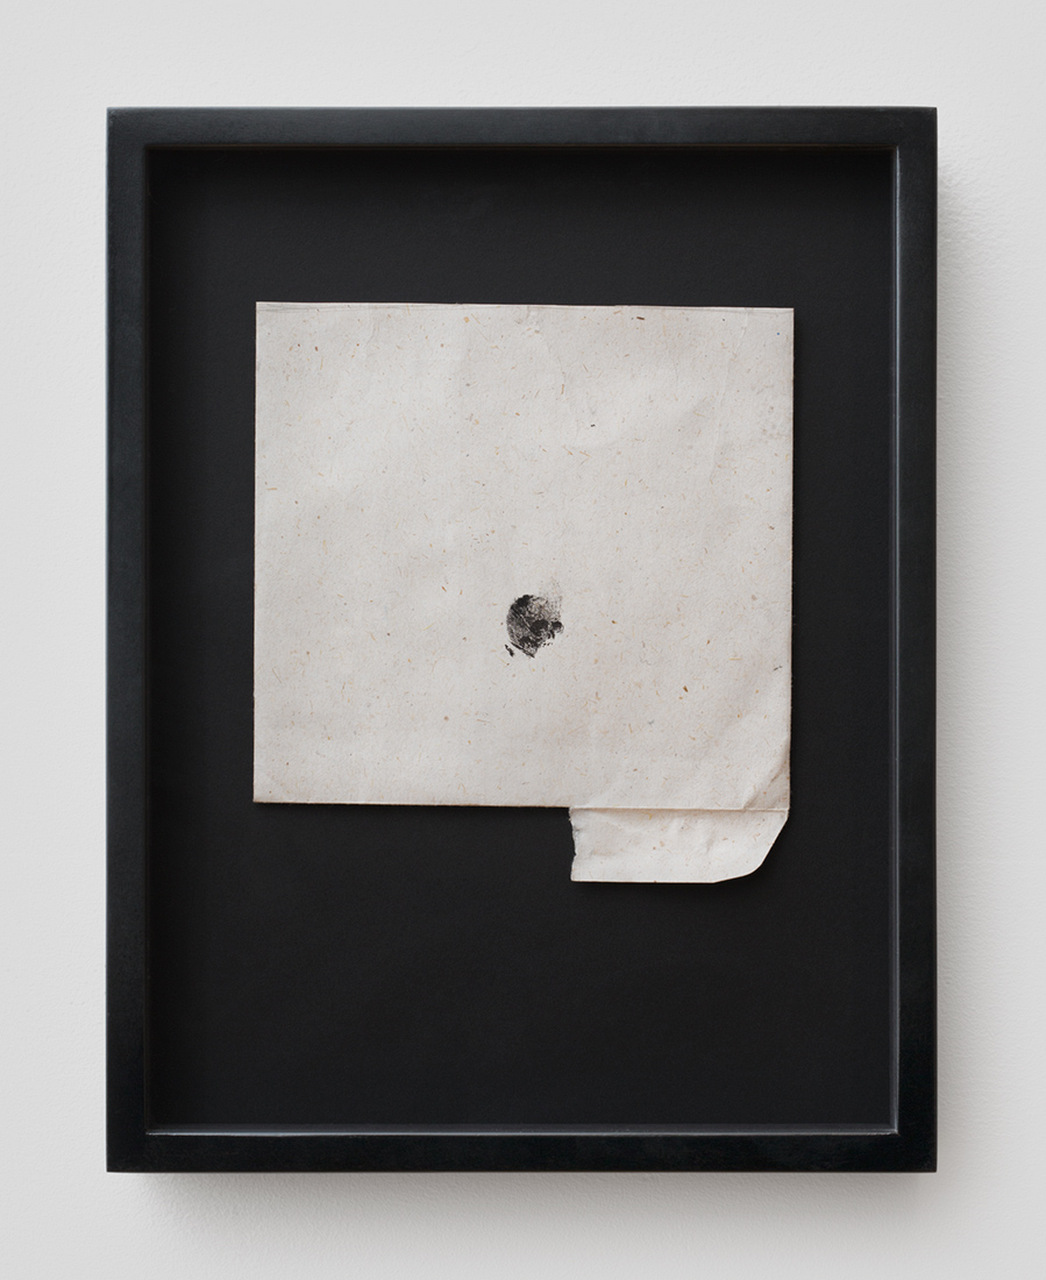 CB9883_MSC_Joao Carvalho Correspondence 2015_ink on paper_ 12 1_4 x 9 1_2 in